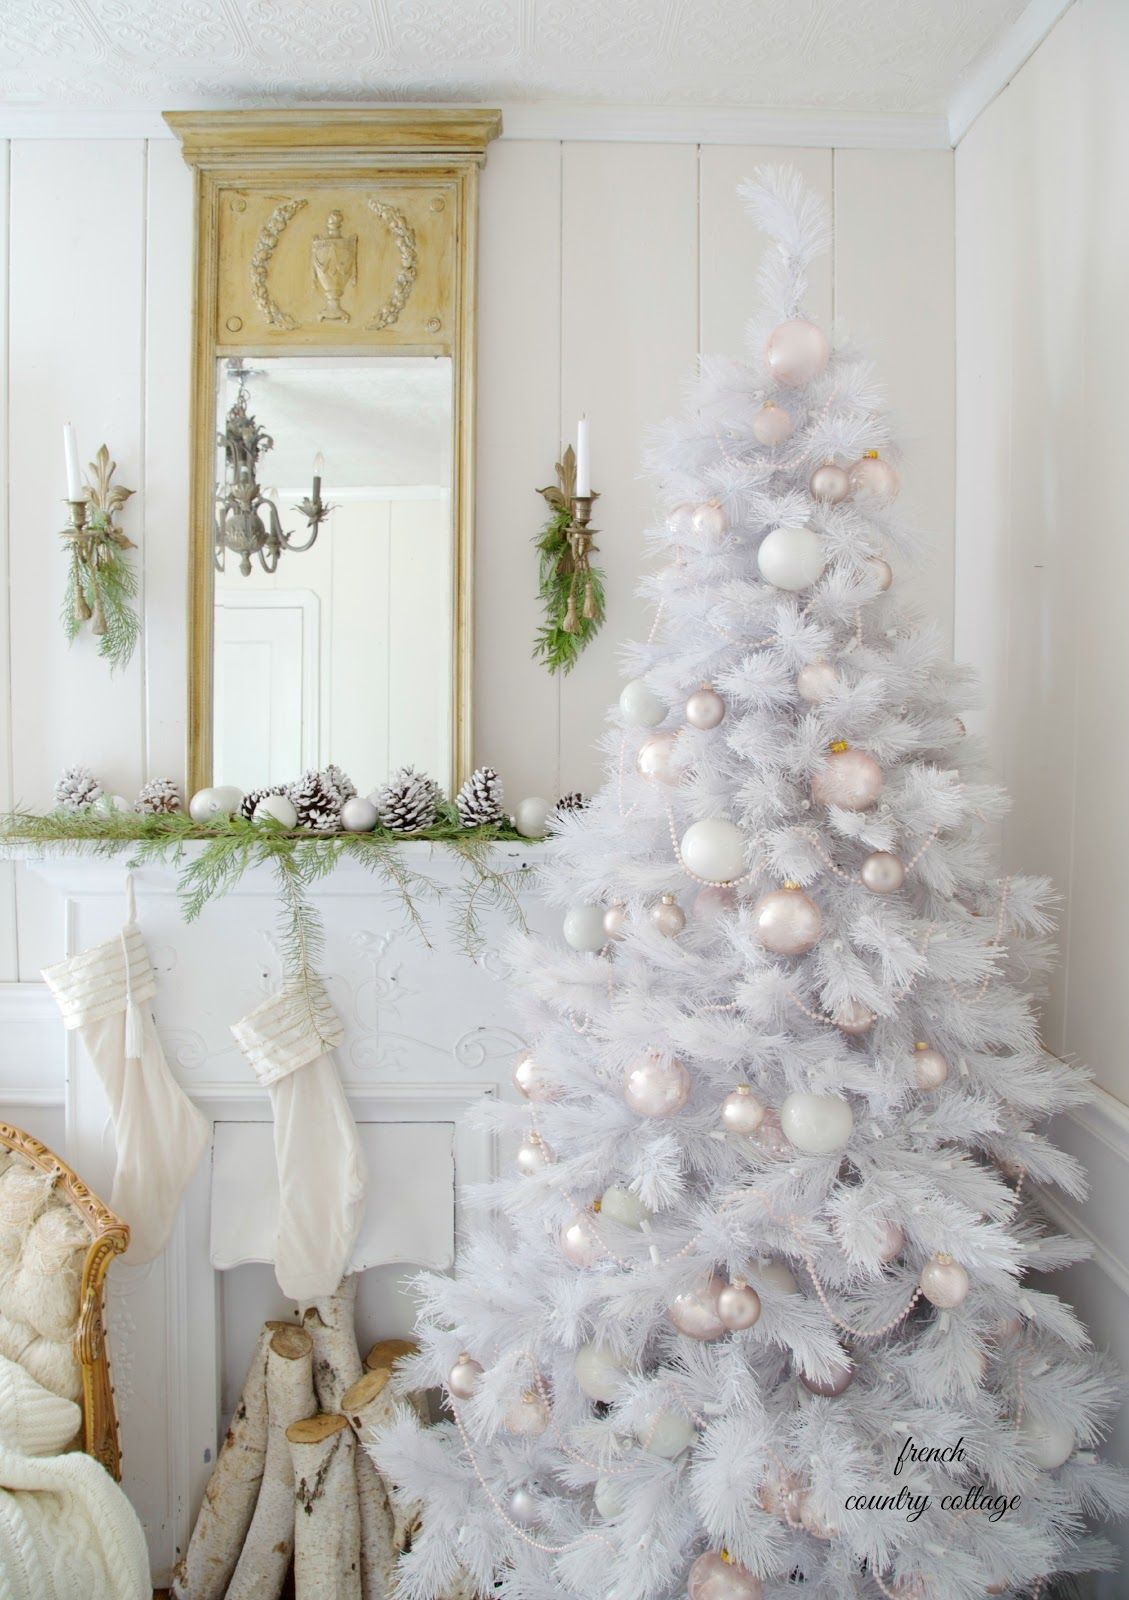 How To Make A White Christmas Tree The Centerpiece Of Your Holiday